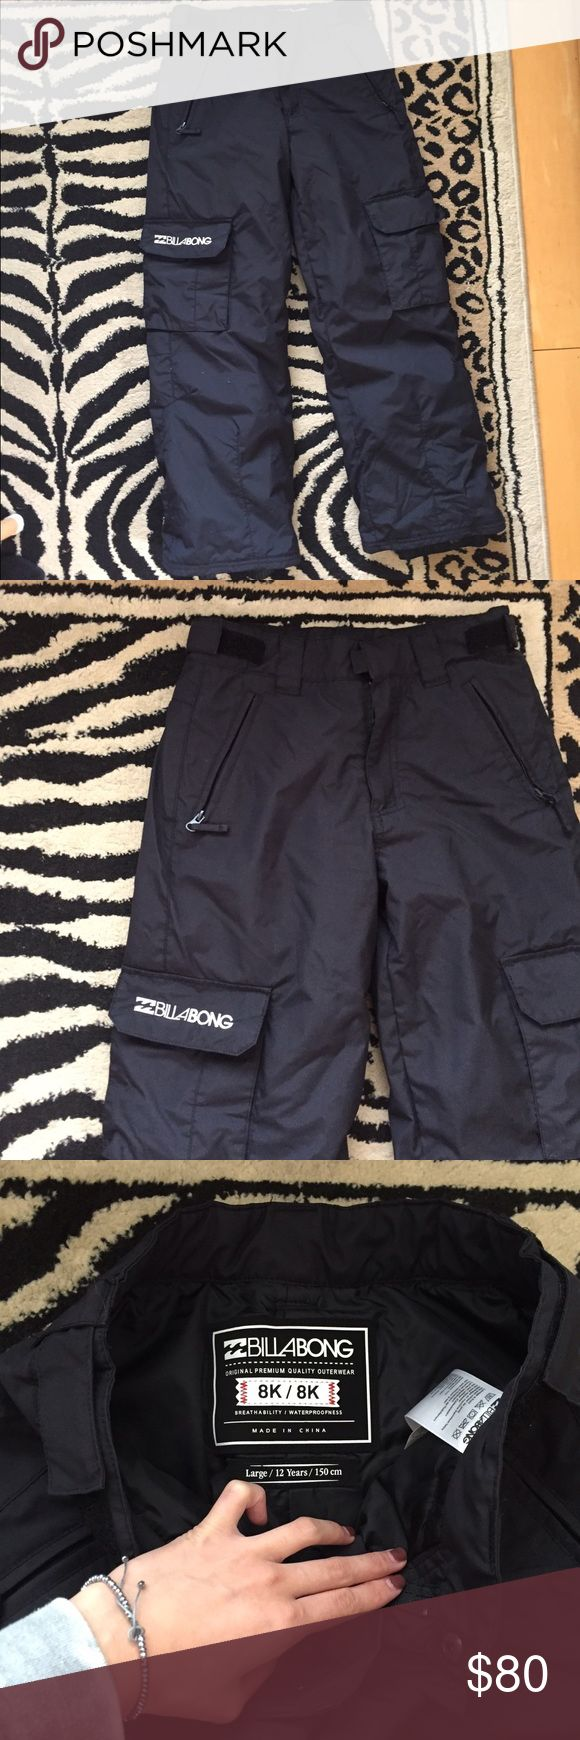 Billabong girl's snow - boarding black pants Bought these 2 seasons ago when it was my first time snowboarding. Didn't feel like dropping 200$ on new boarding pants so I bought a girls pant. Retail $99. In 5'3. The length is a little short on me. I'm a size 25 usually and the waist fits me pretty snug. This would be ideal for someone who's my height or a little shorter with a size 24-23 waist. In good condition. Has lots of functional pockets! Size label states Large / 12 years / 150 cm…